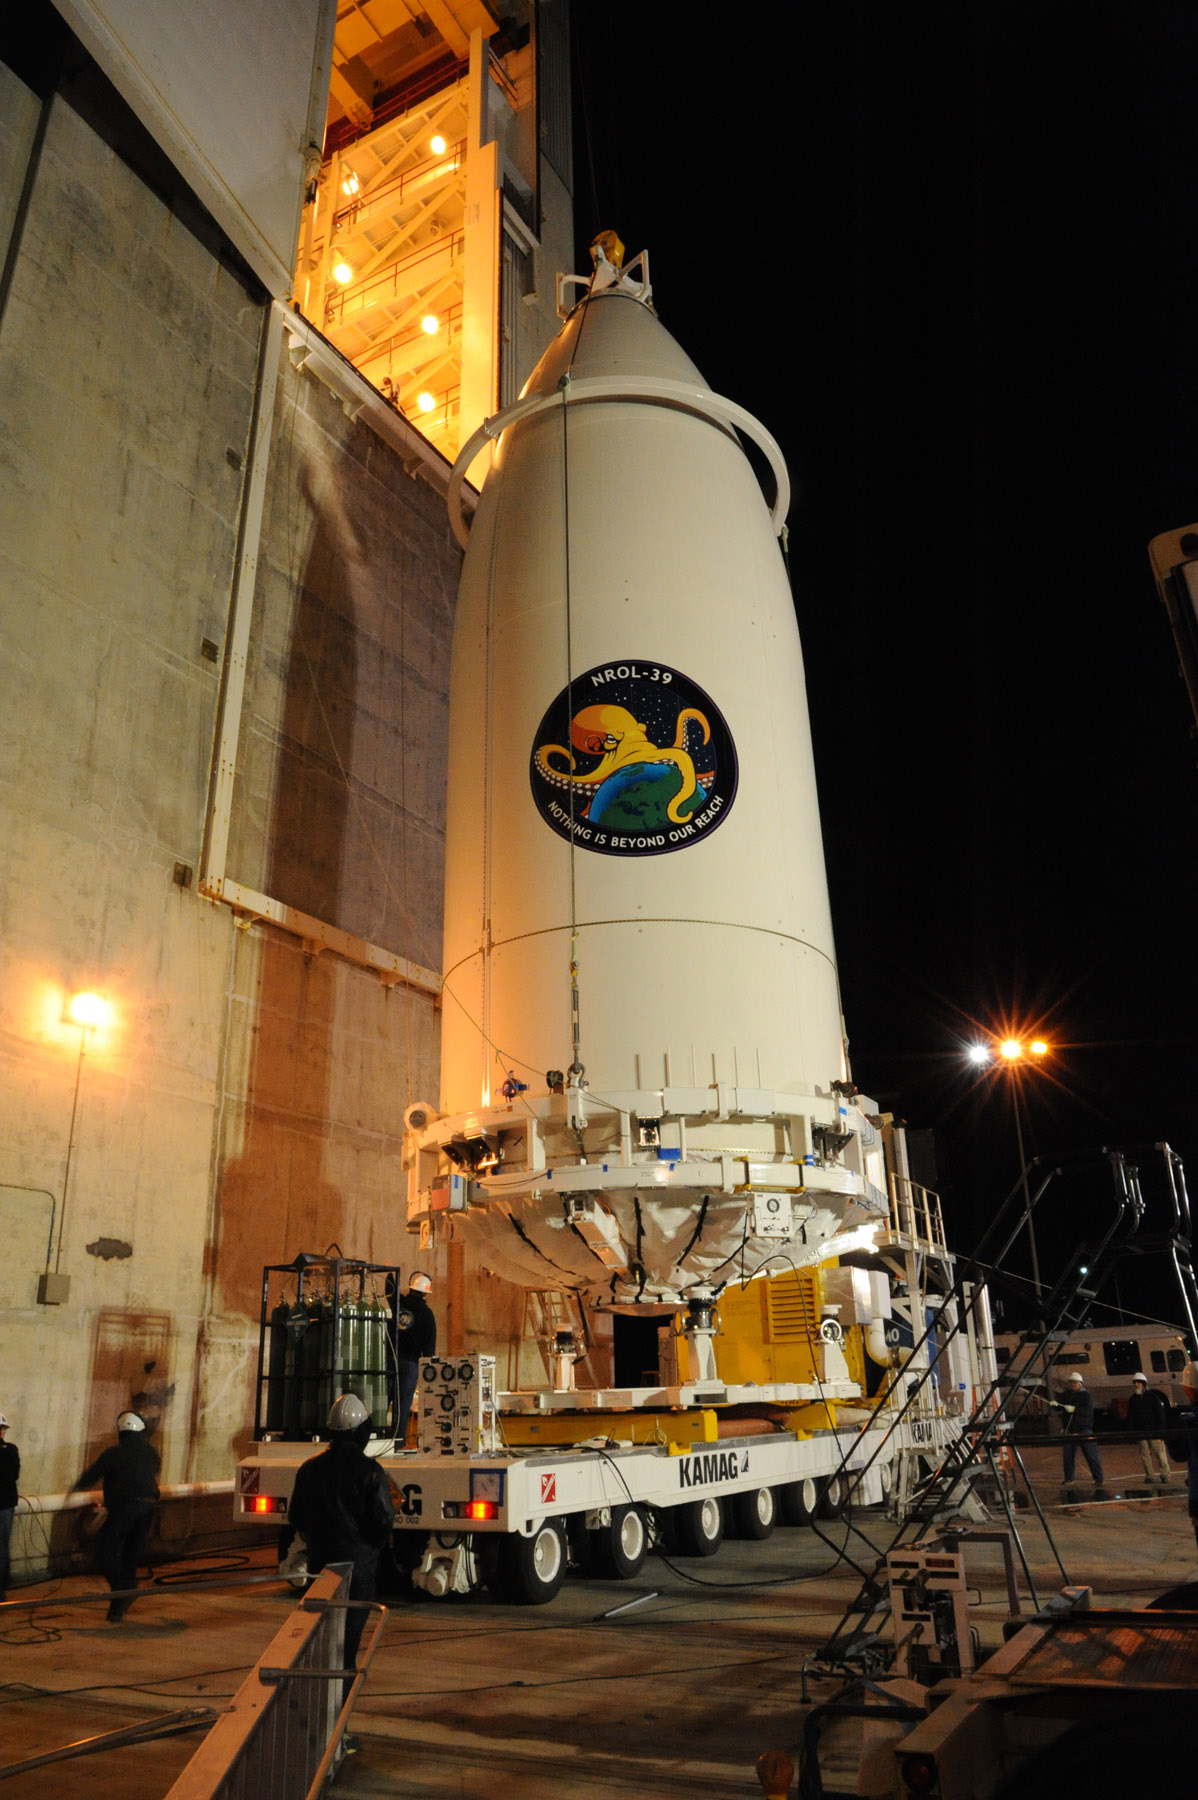 NROL-39 Payload Heads to Atlas V Booster